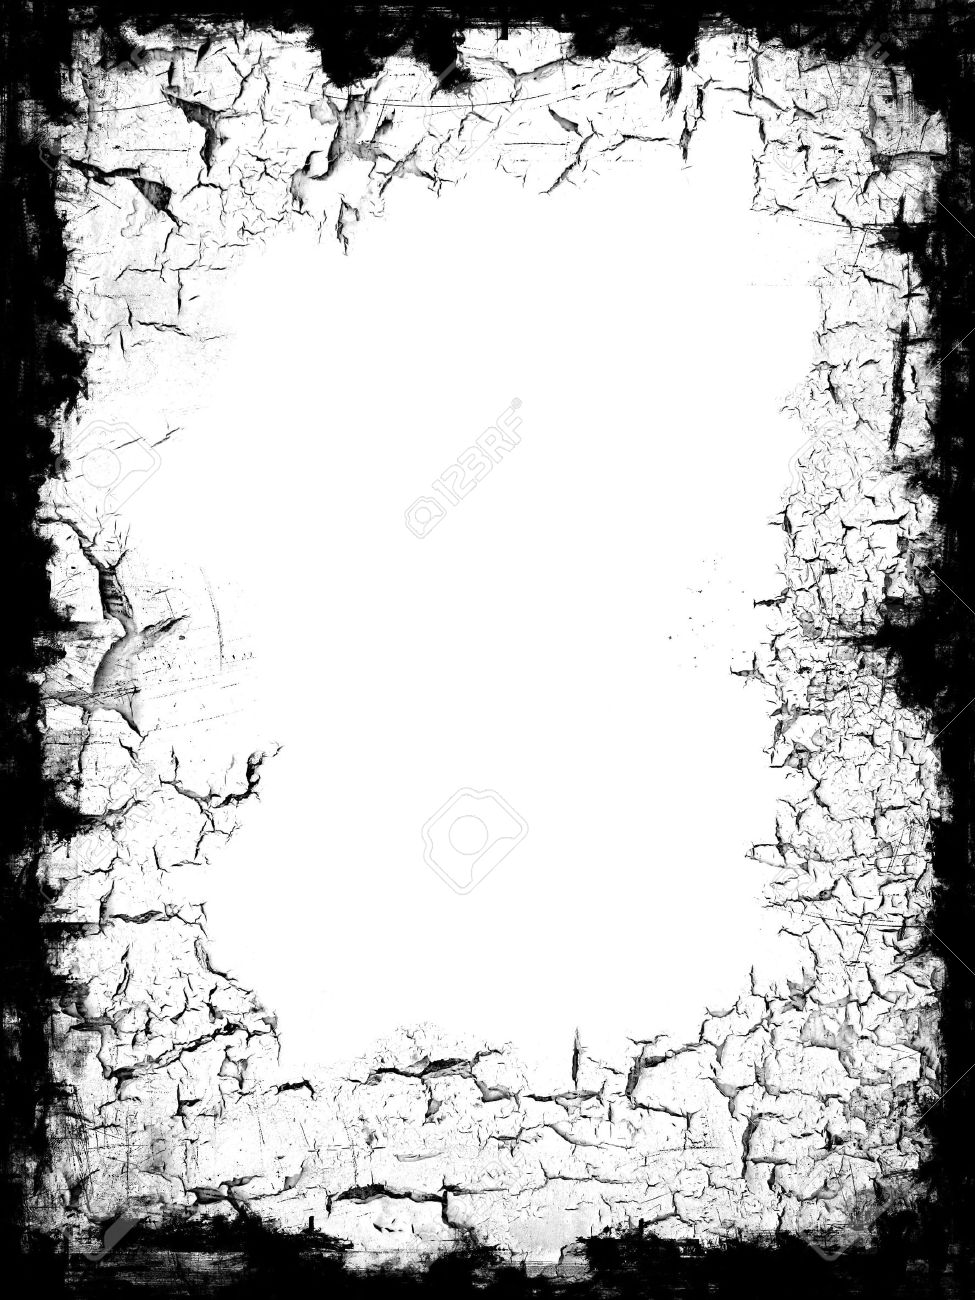 Distressed Black Frame Border With White Blank Middle For Your ...